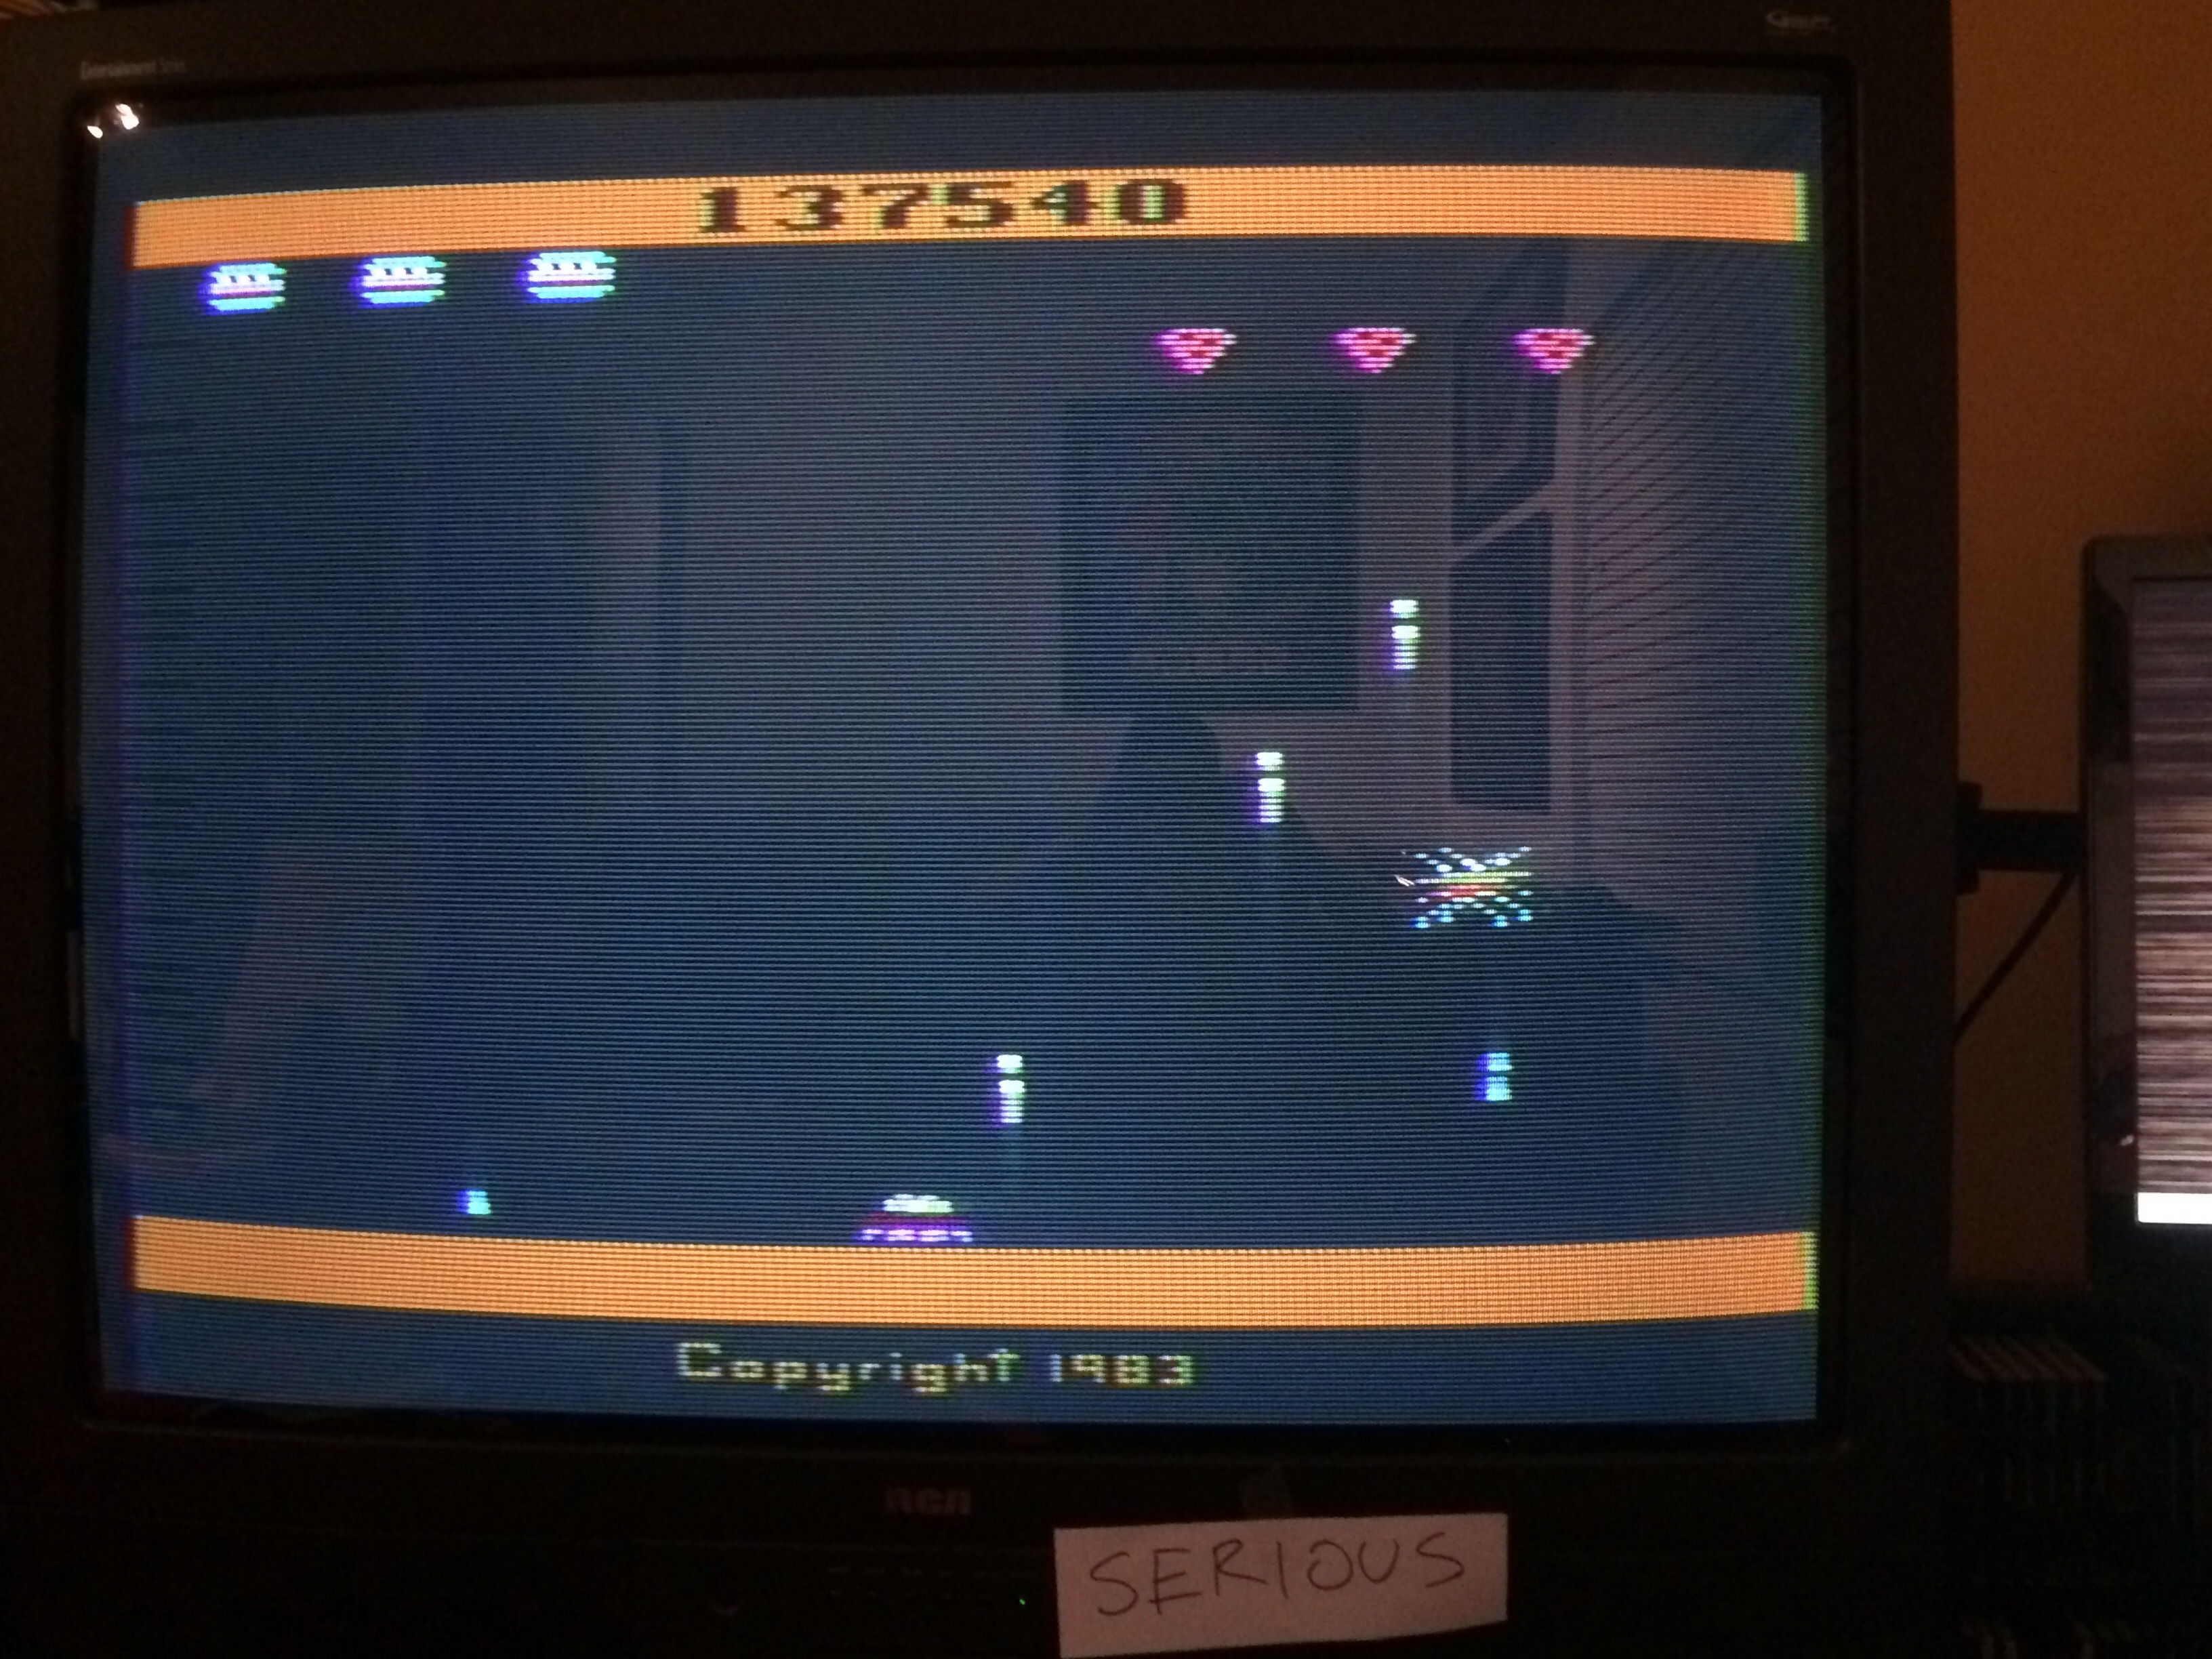 Serious: Spider Fighter (Atari 2600 Expert/A) 137,540 points on 2015-01-21 16:07:55